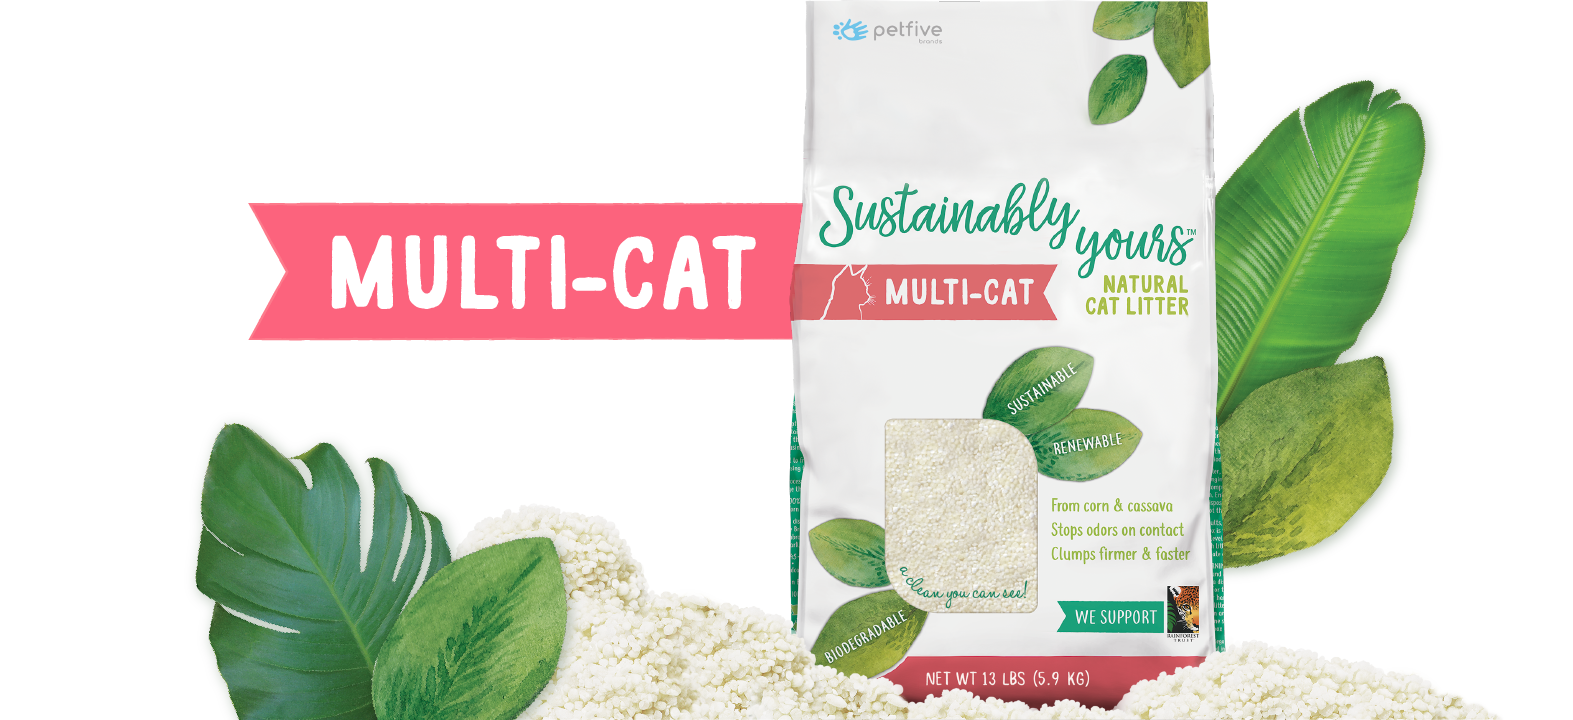 Sustainably Yours Natural Multi-Cat Litter, 13-lb